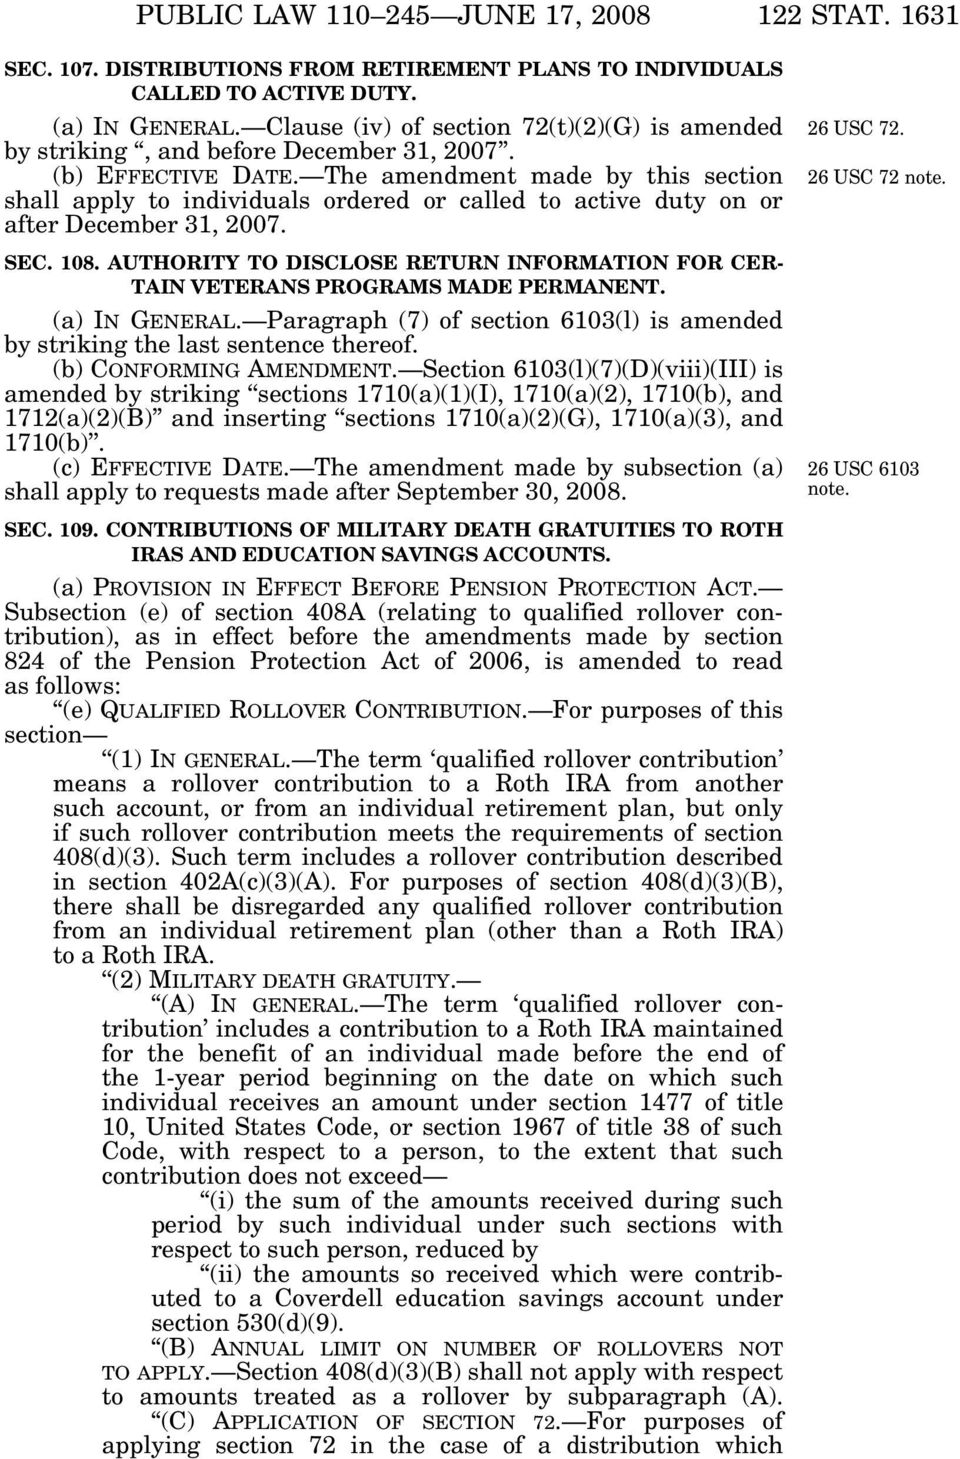 The amendment made by this section shall apply to individuals ordered or called to active duty on or after December 31, 2007. SEC. 108.